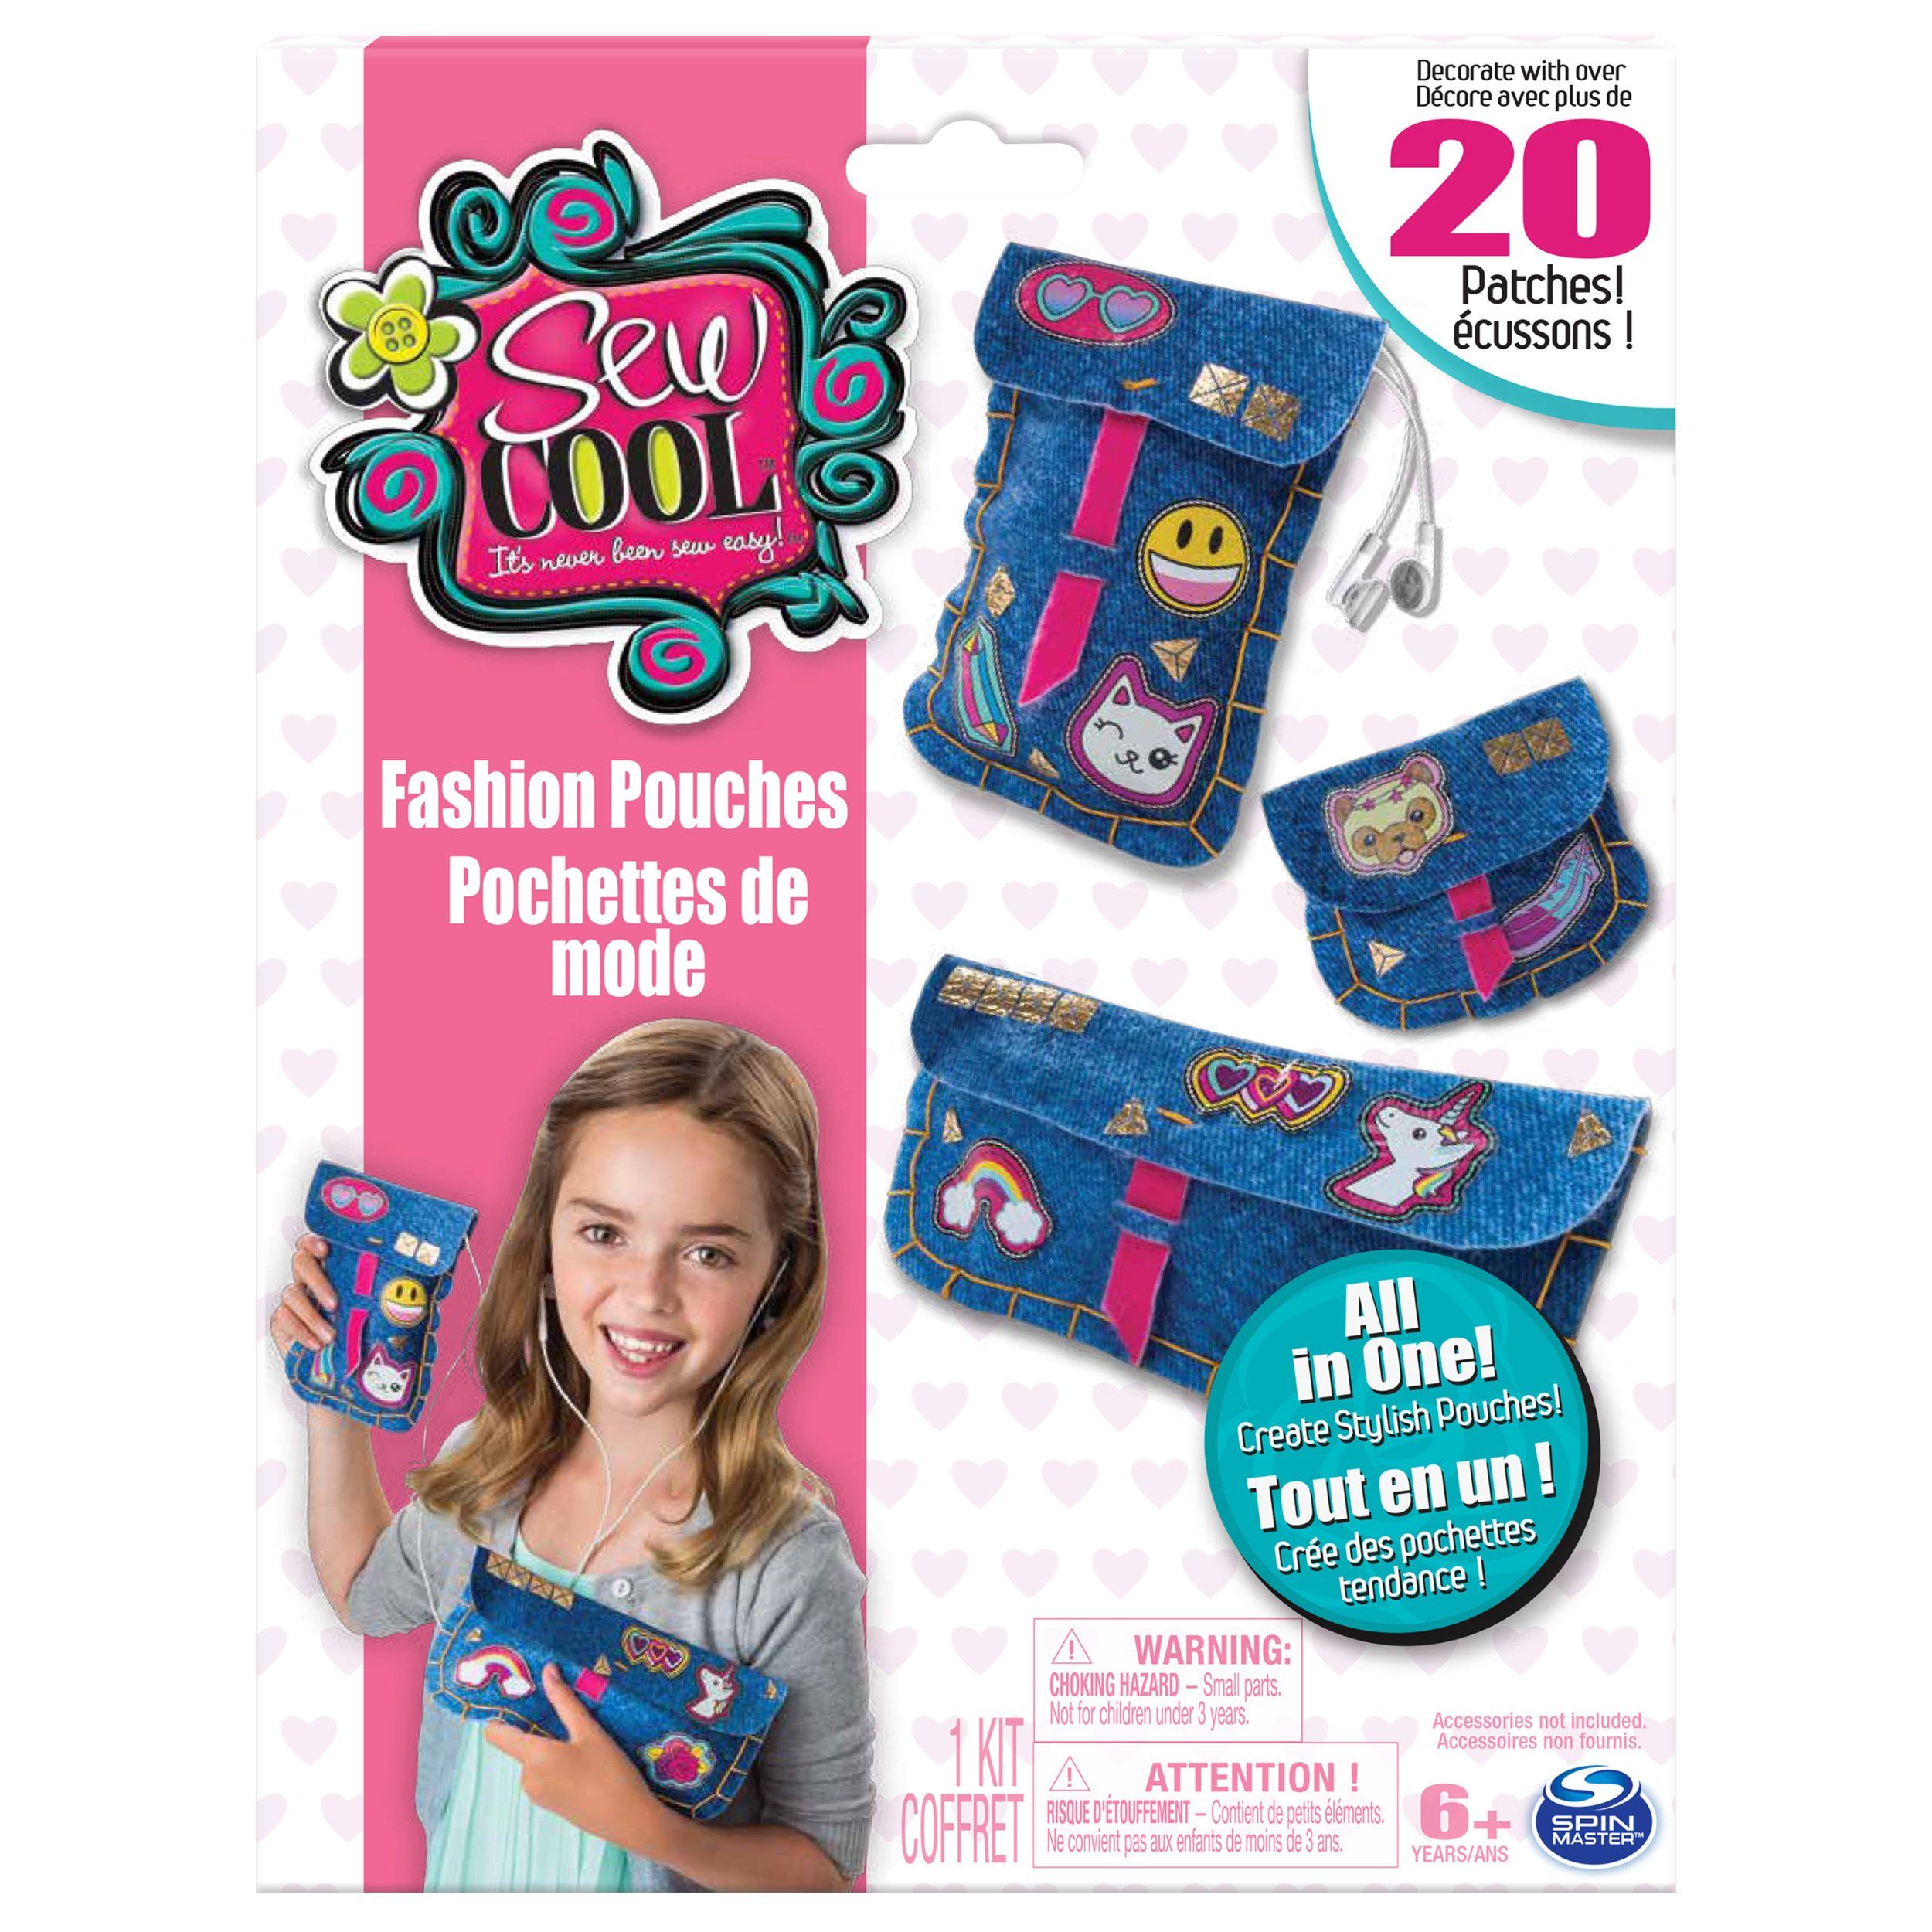 Sew Cool Fashion Pouches - All-in-One Kit